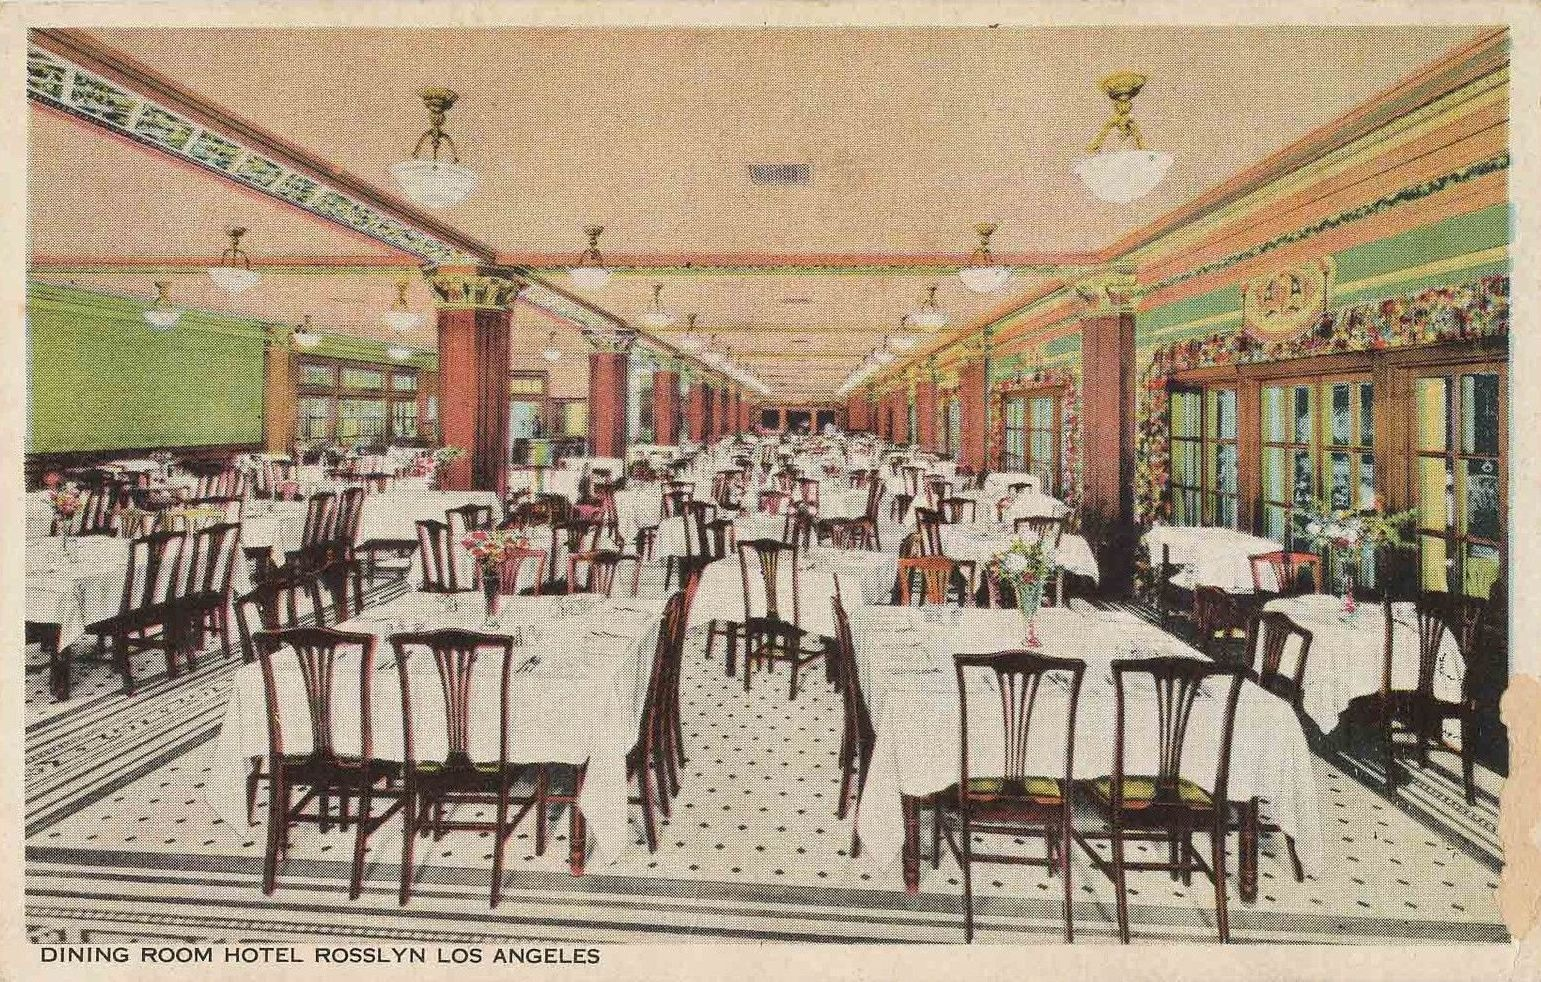 Rosslyn Hotel's dining room in the 1920s, Los Angeles